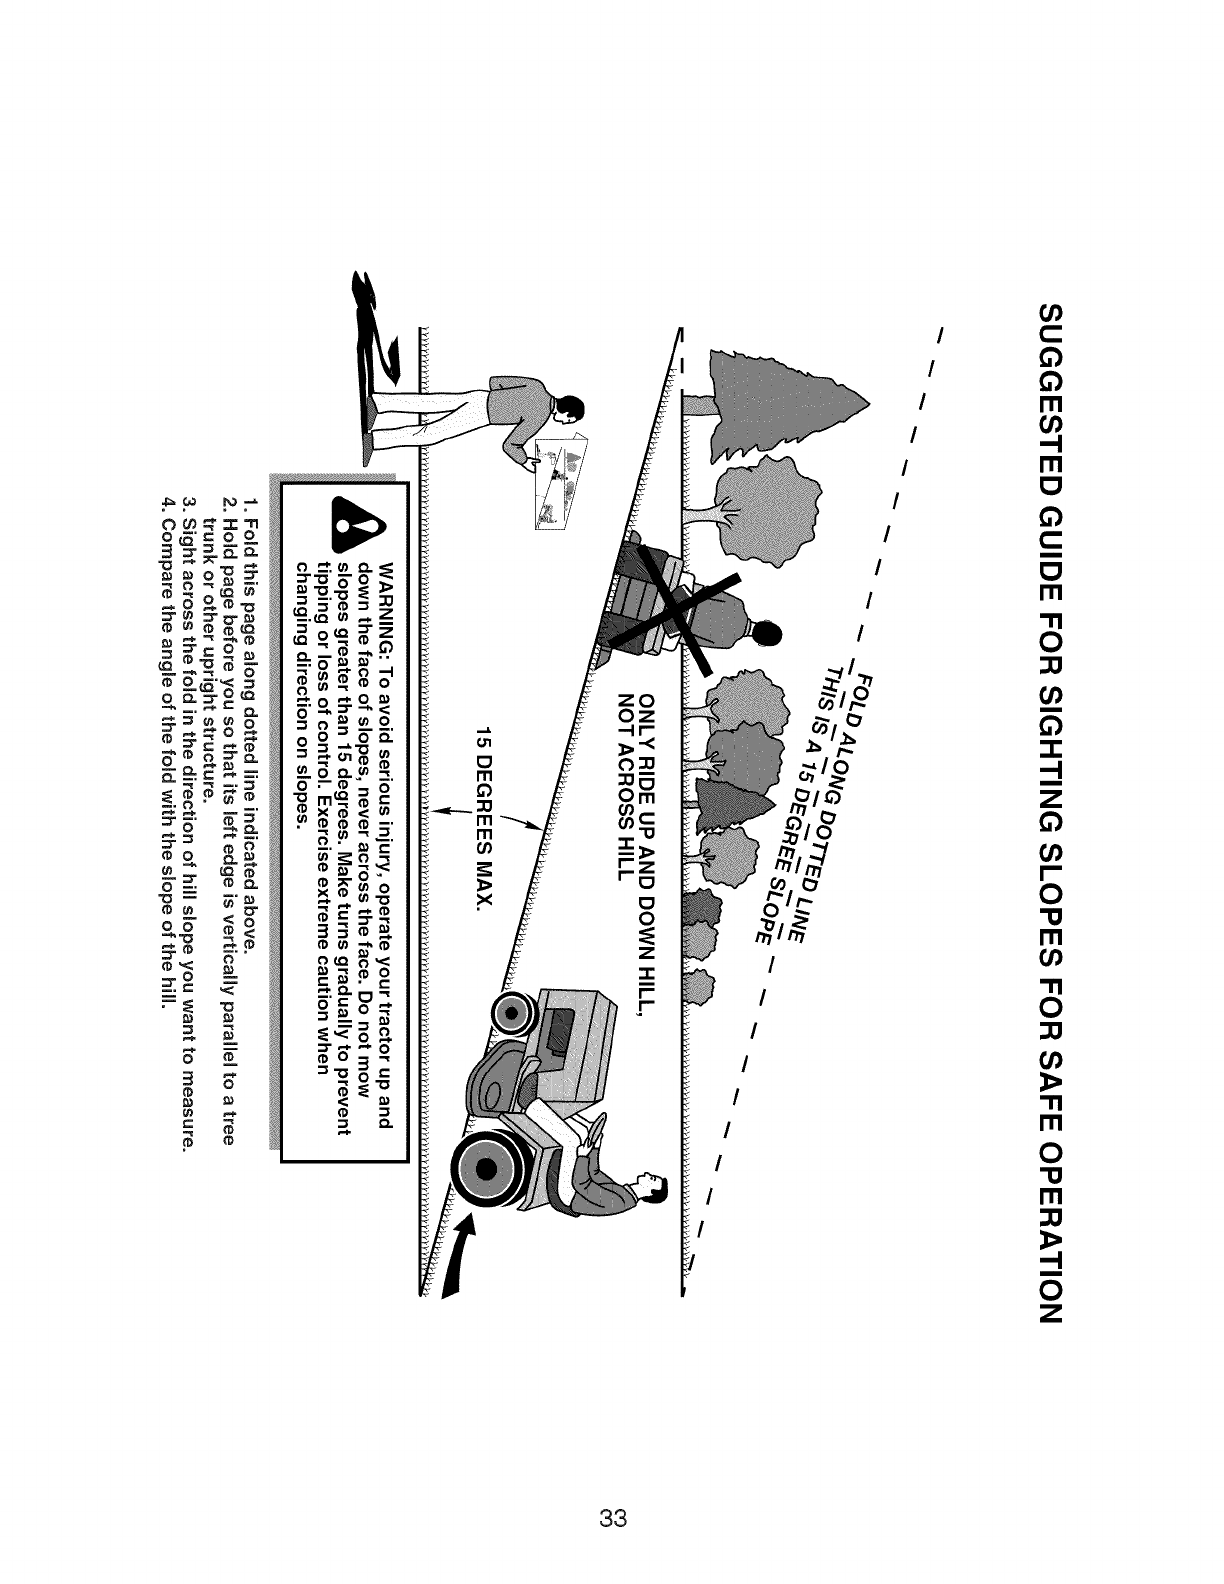 Page 33 of Craftsman Lawn Mower 917.289283 User Guide